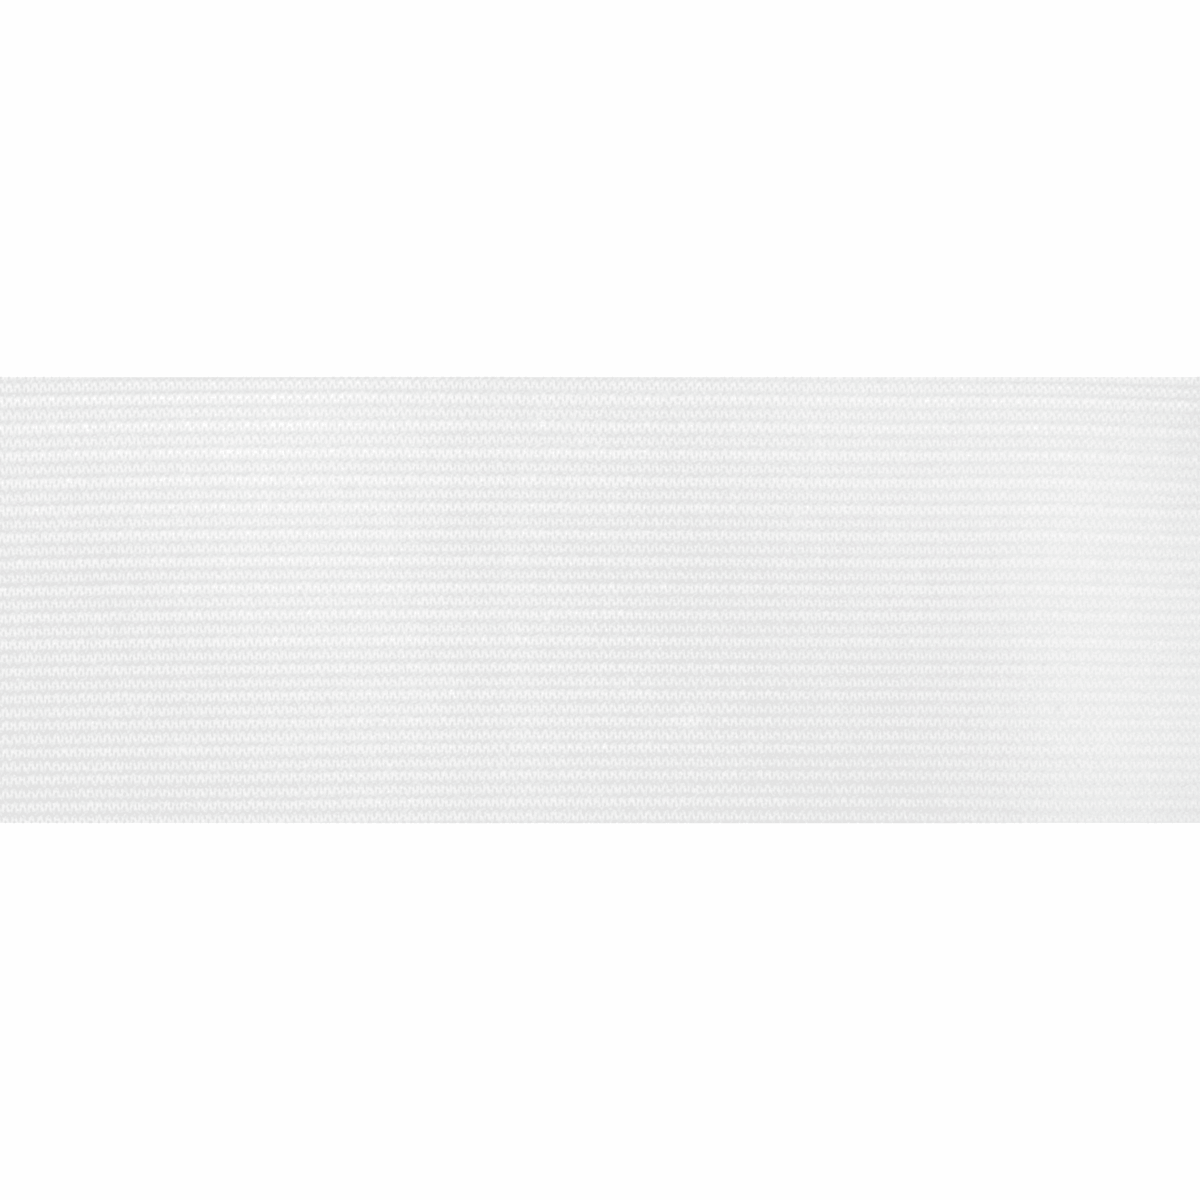 Picture of Latex Free Elastic: 622m x 25mm: White